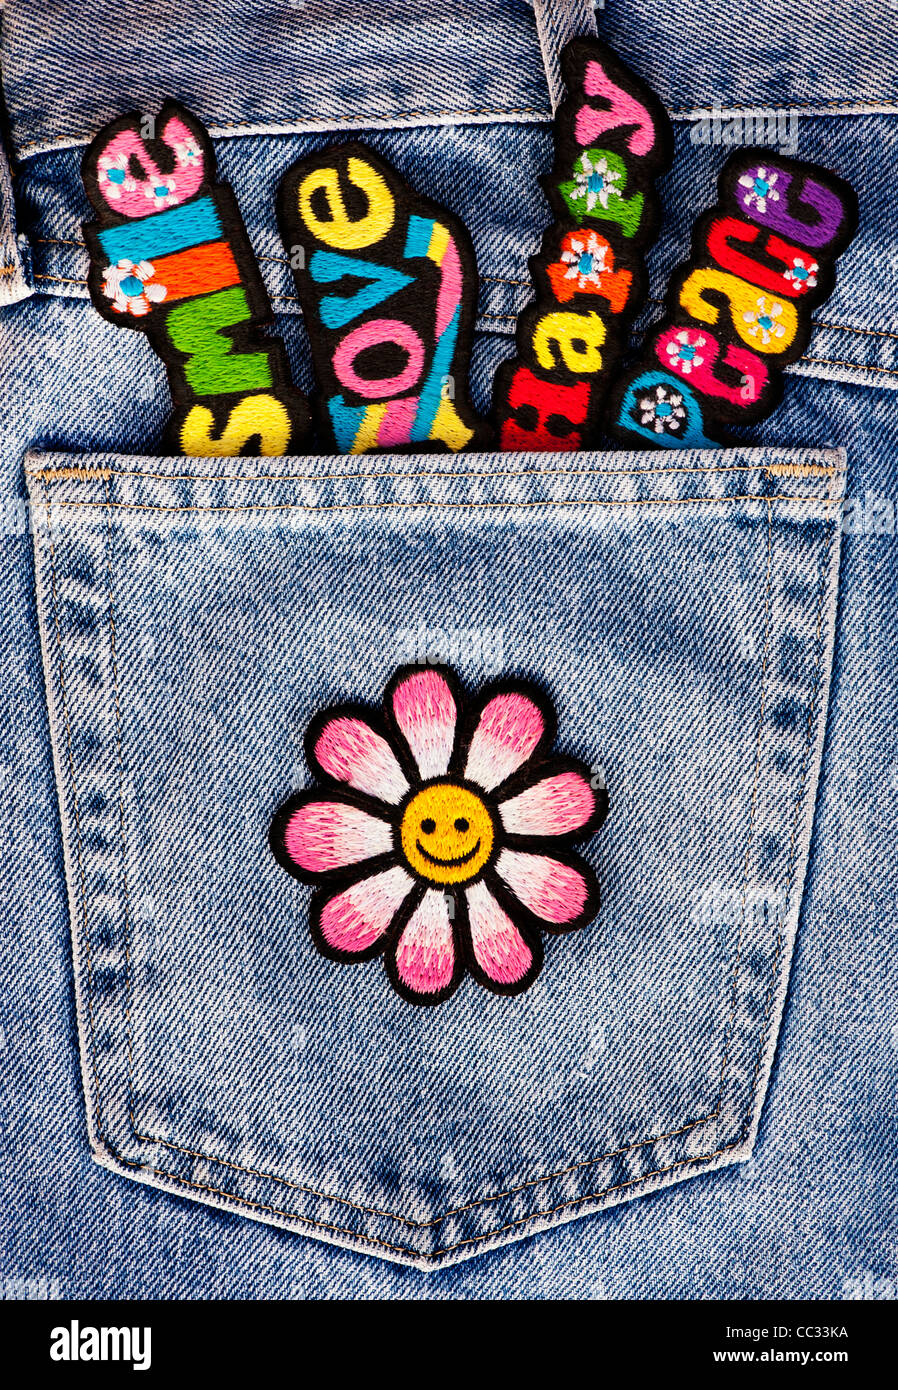 Embroidery iron on patches of Multicoloured Love, Peace, Happy words with a smiley face flower in a denim pocket - Stock Image